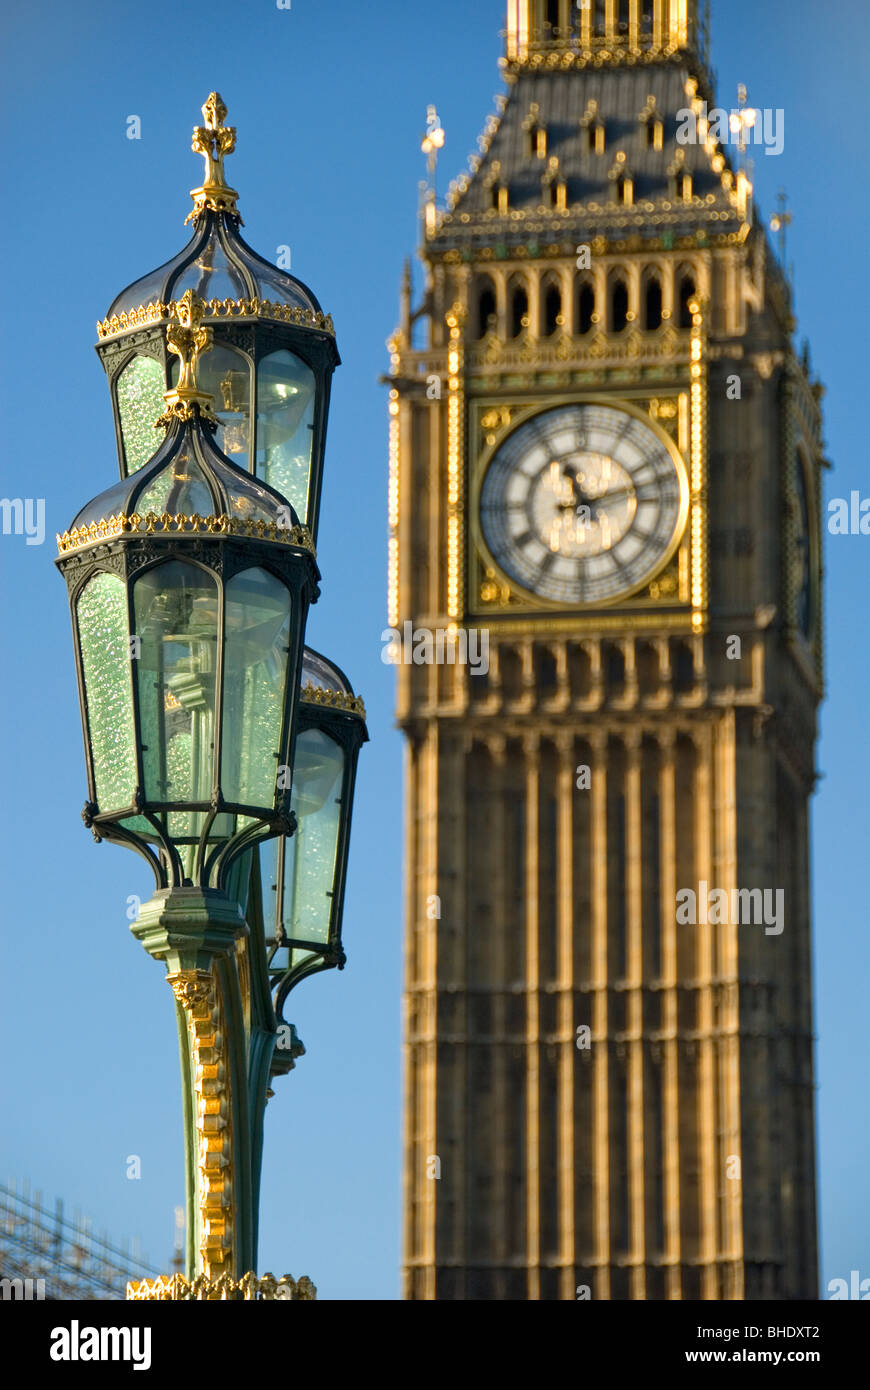 Old street lamp and Big Ben clock tower, Houses of Parliament ...